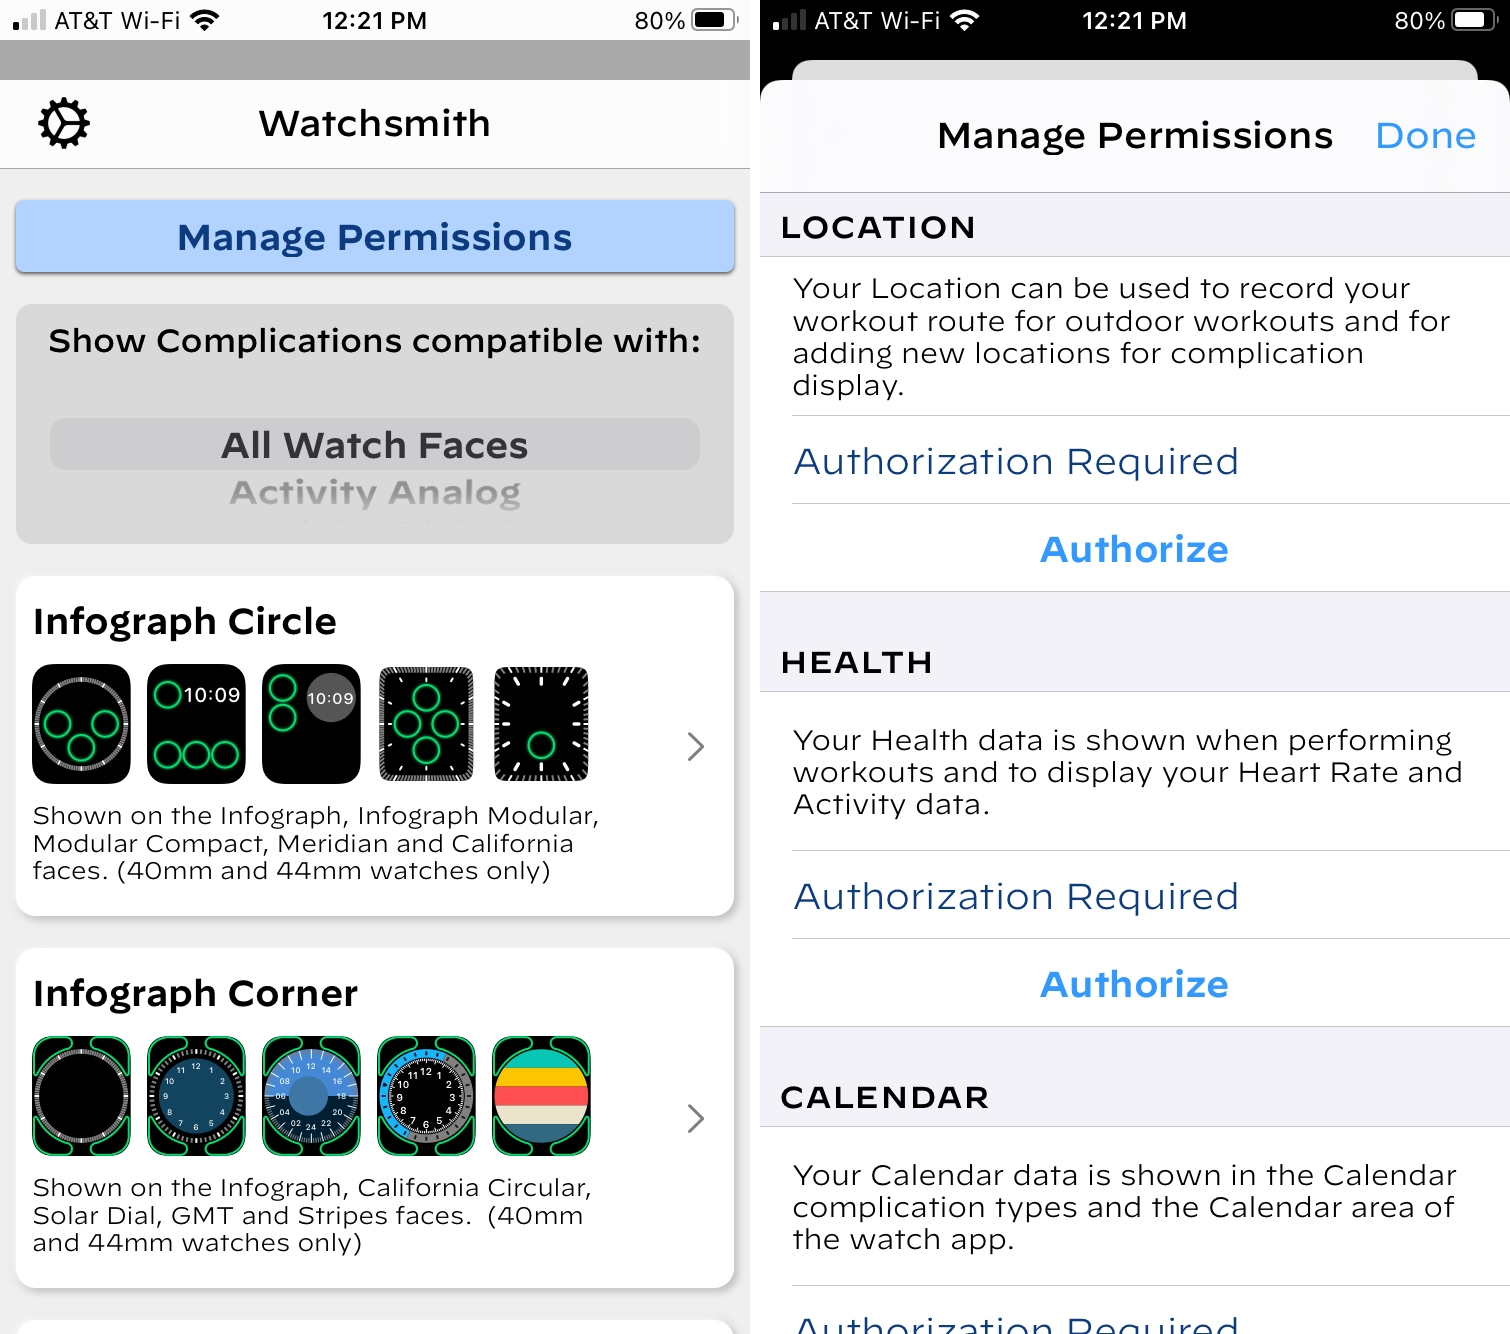 Watchsmith Manage Permissions